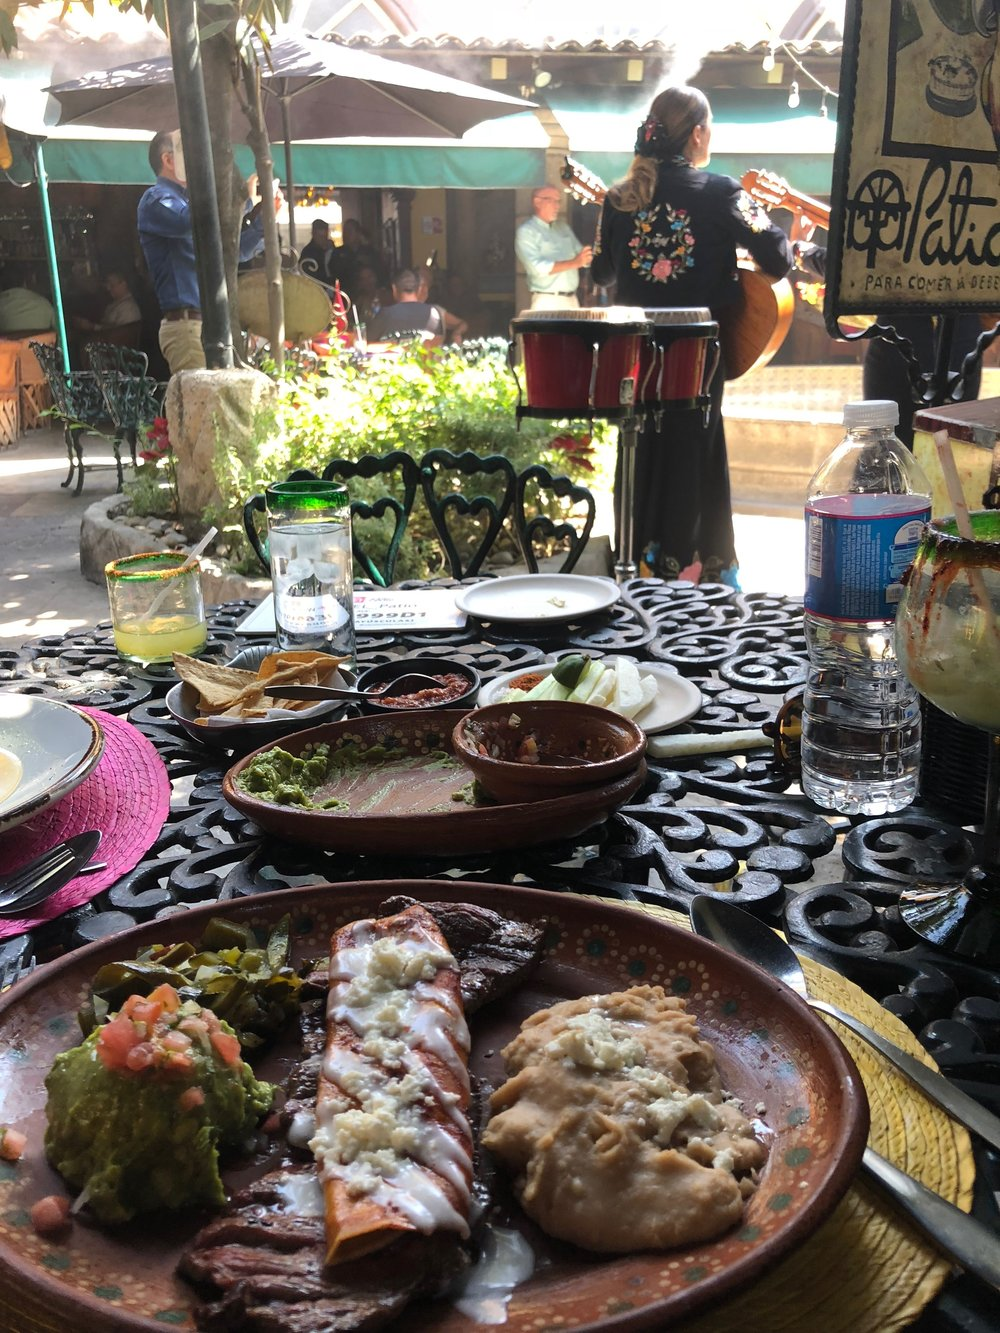 Lunch at El Patio was exactly what we needed.